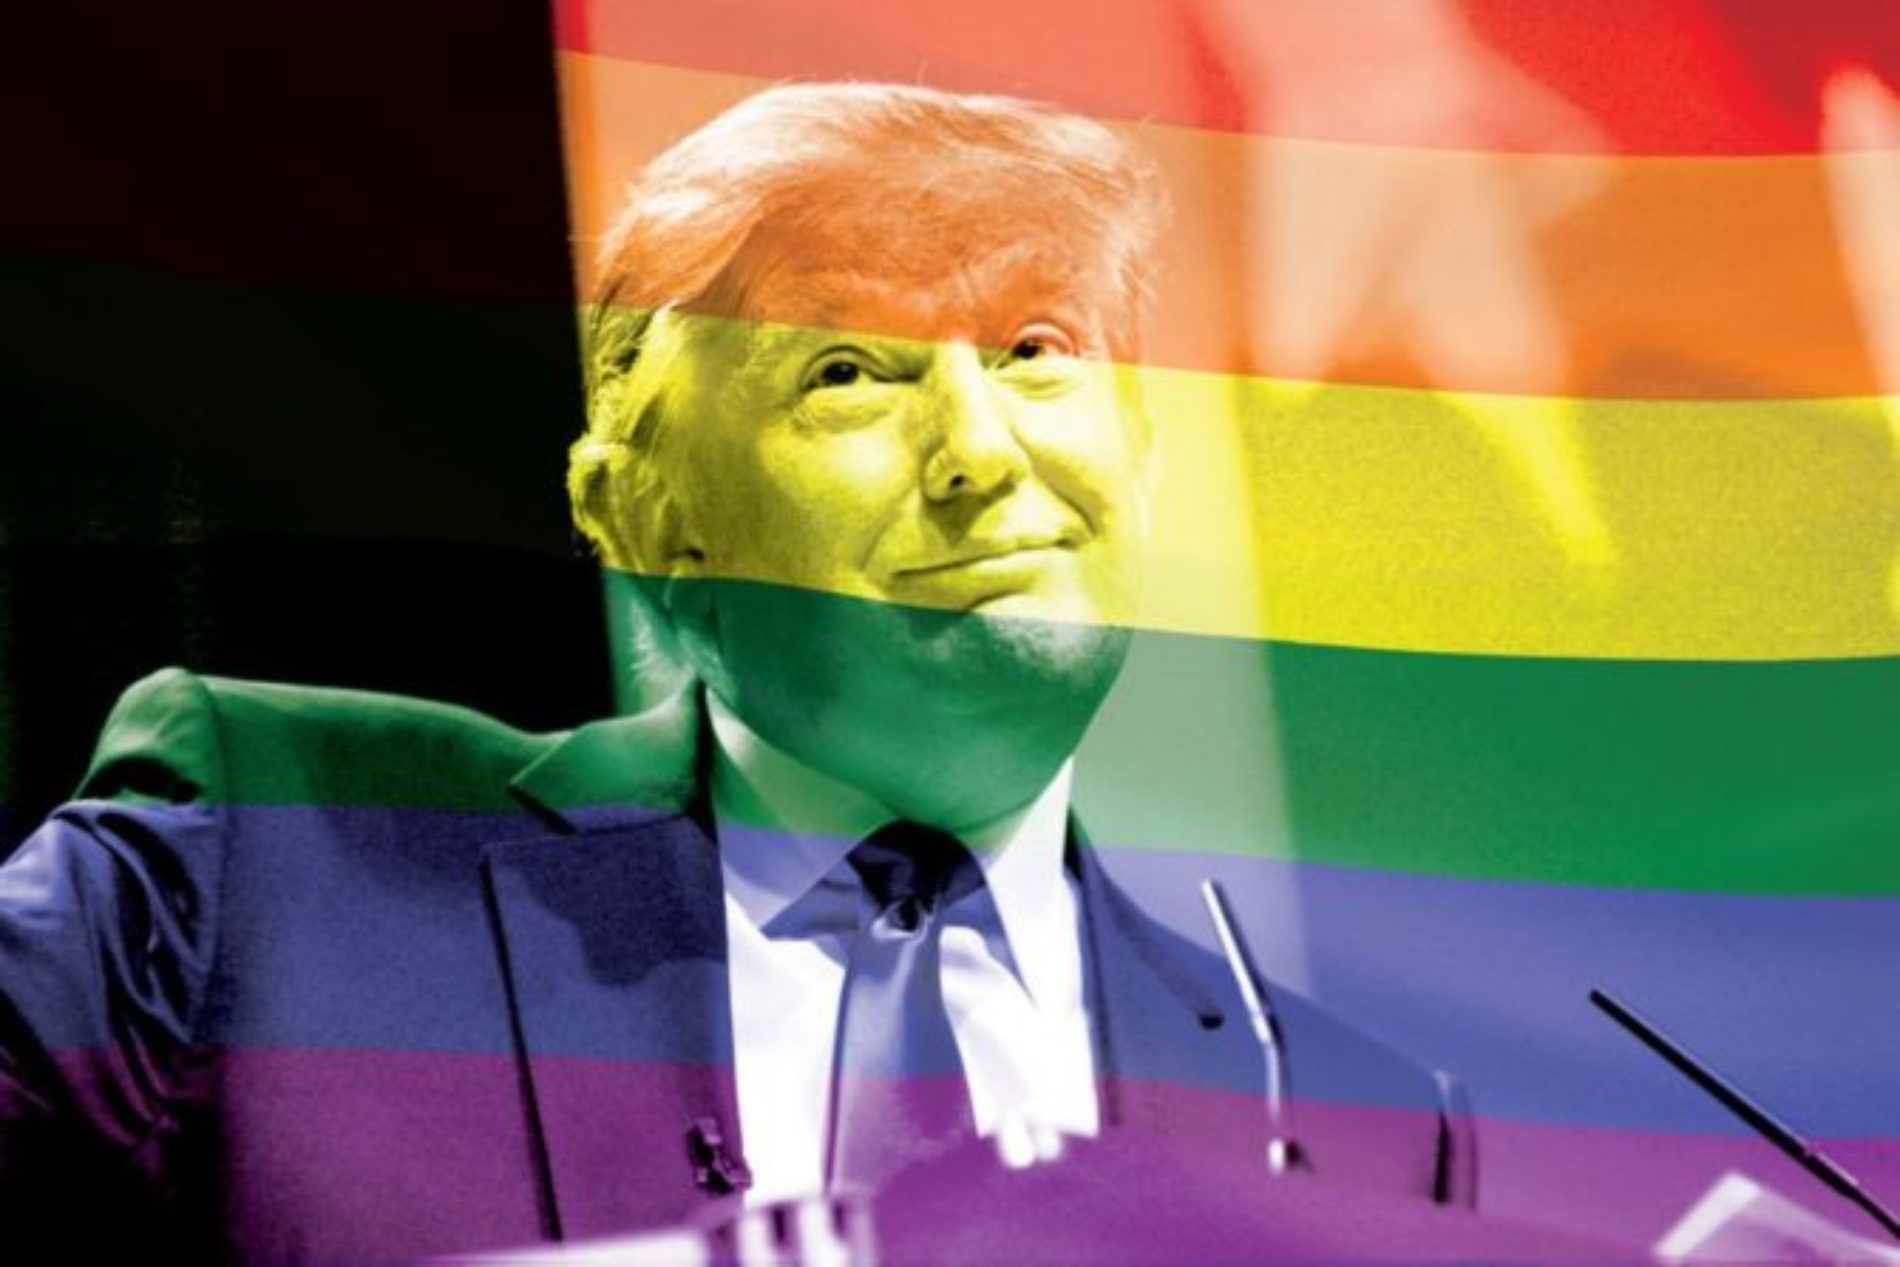 Is the White House intentionally trolling LGBT Americans by threatening their rights?